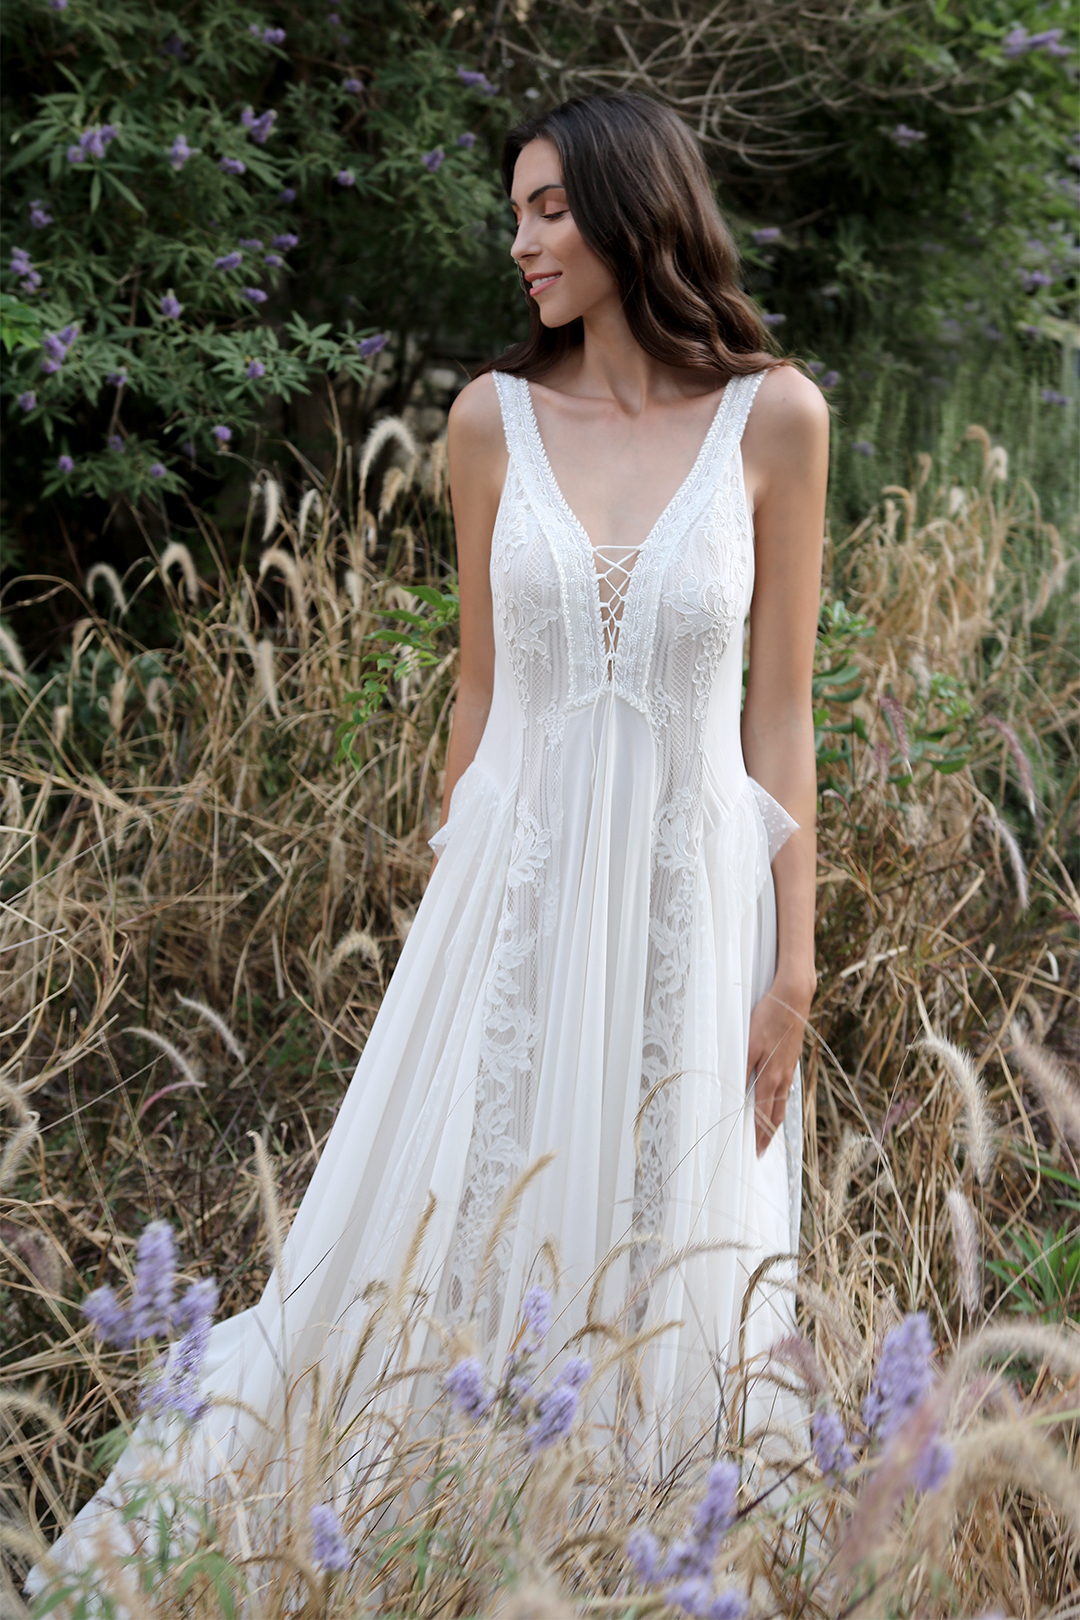 113-The MUSK Collection ELISH Bridal - 2